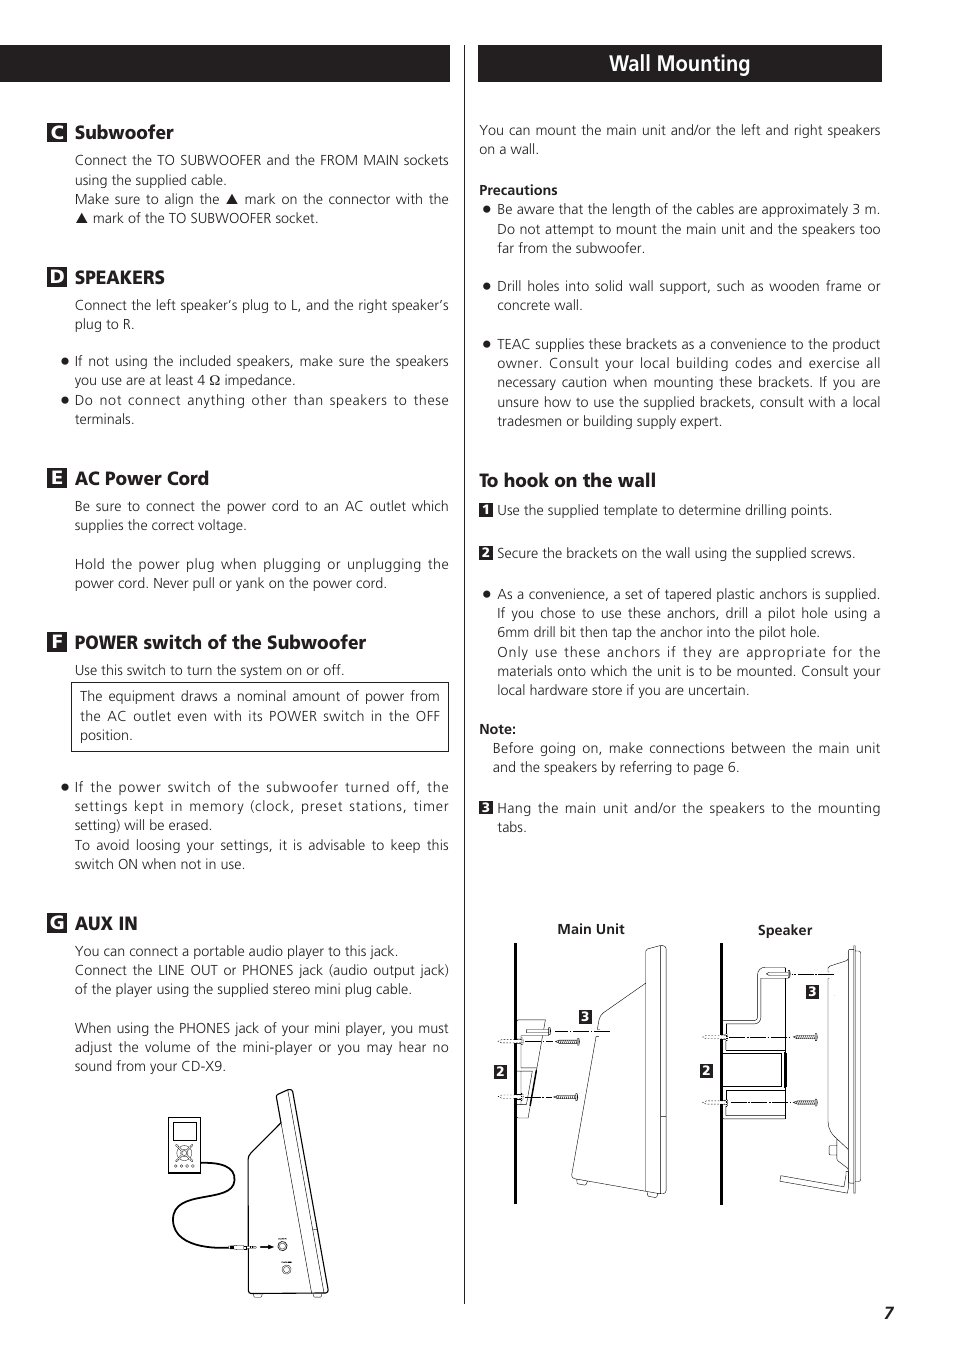 medium resolution of wall mounting subwoofer speakers teac cd x9 user manual page 7 24